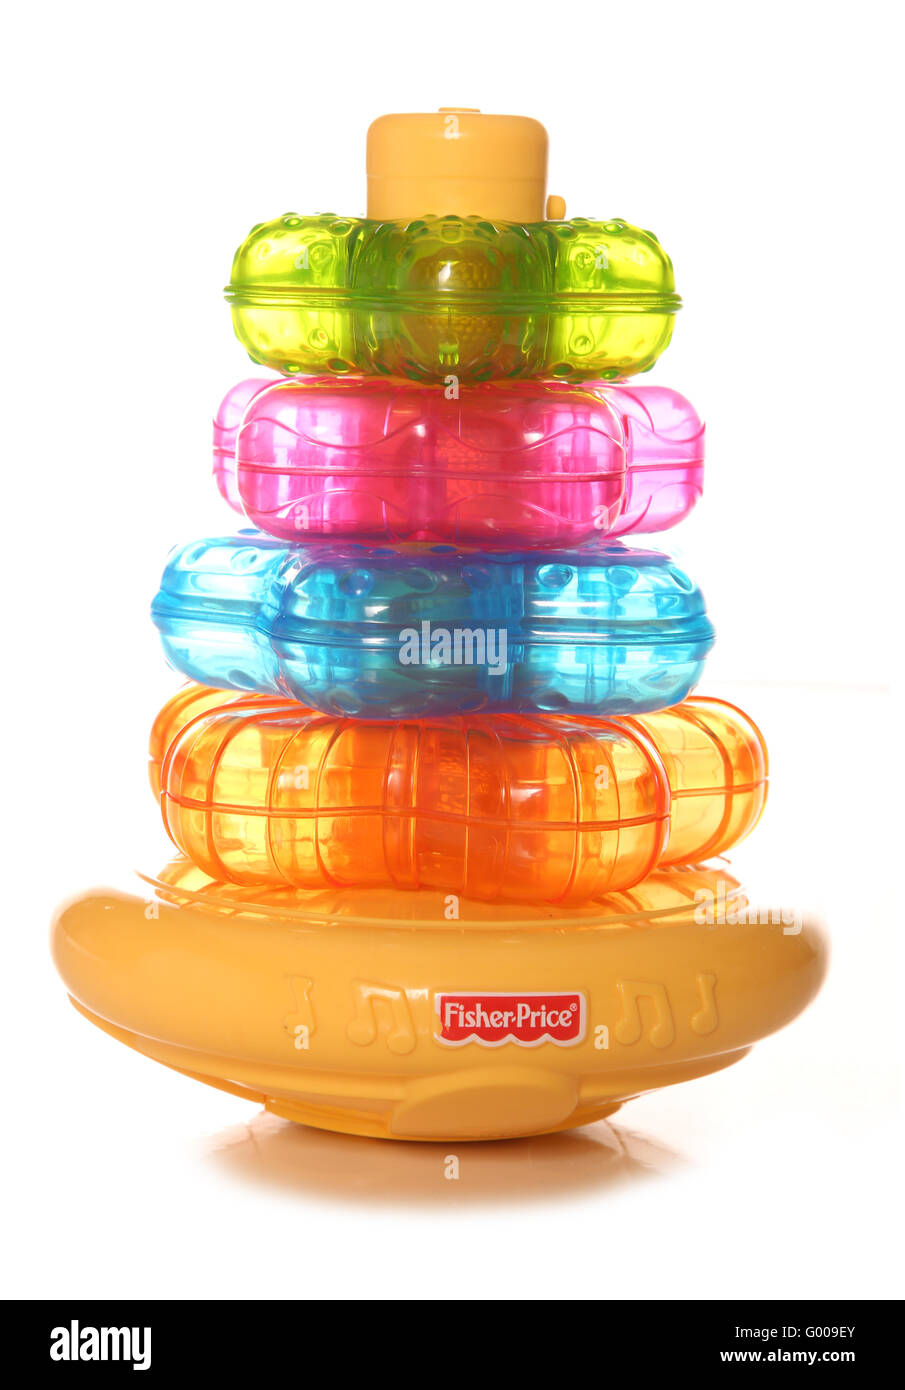 Fisher price light up stacker toy cutout - Stock Image